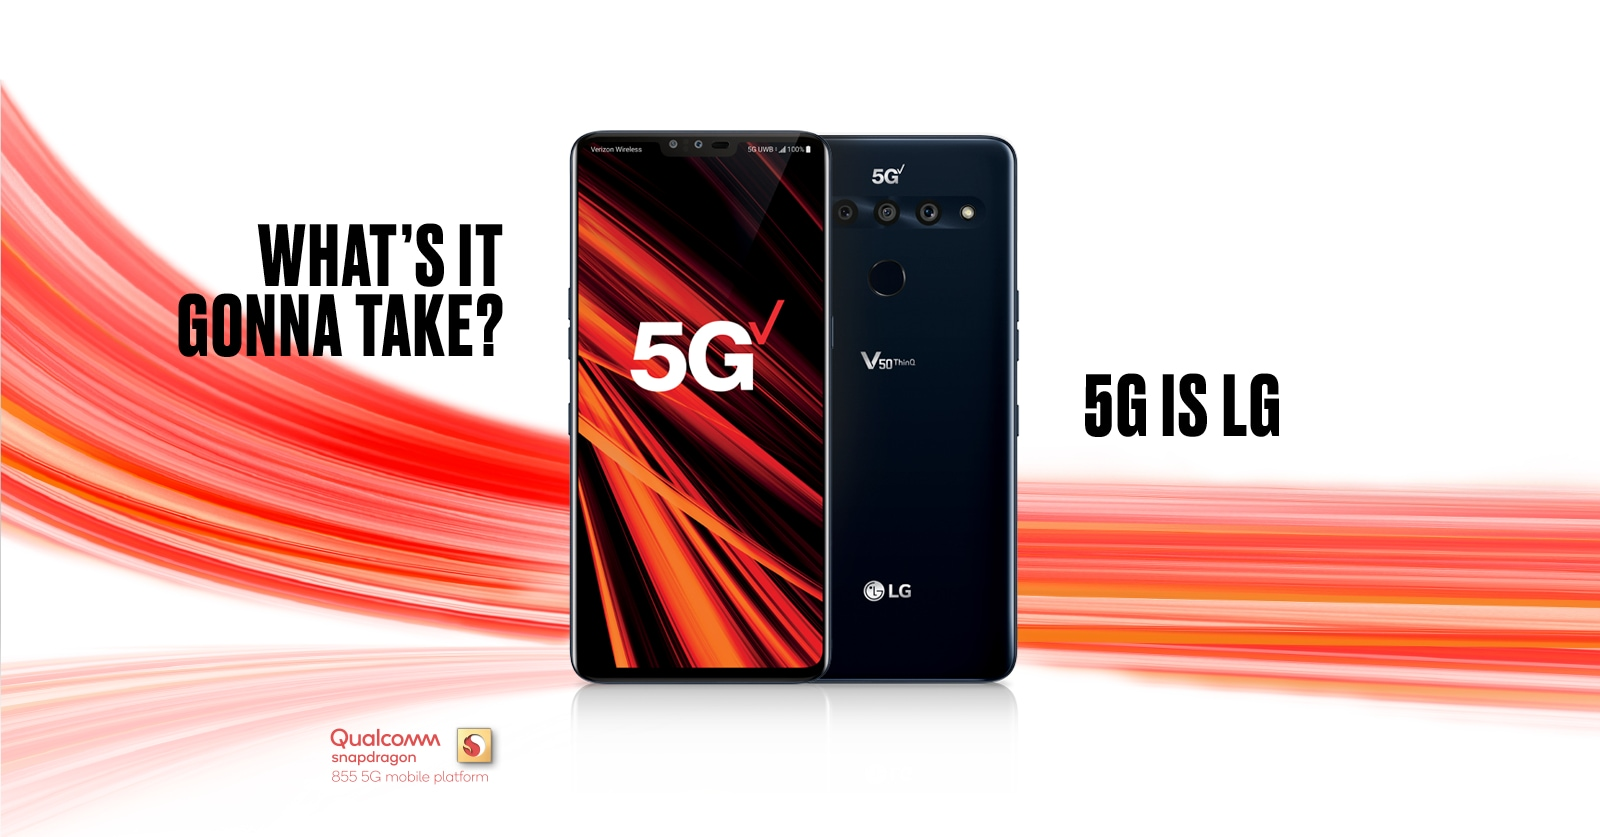 WHAT'S IT GONNA TAKE? 5G IS LG. Qualcomm snapdragron 855 5G mobile platform